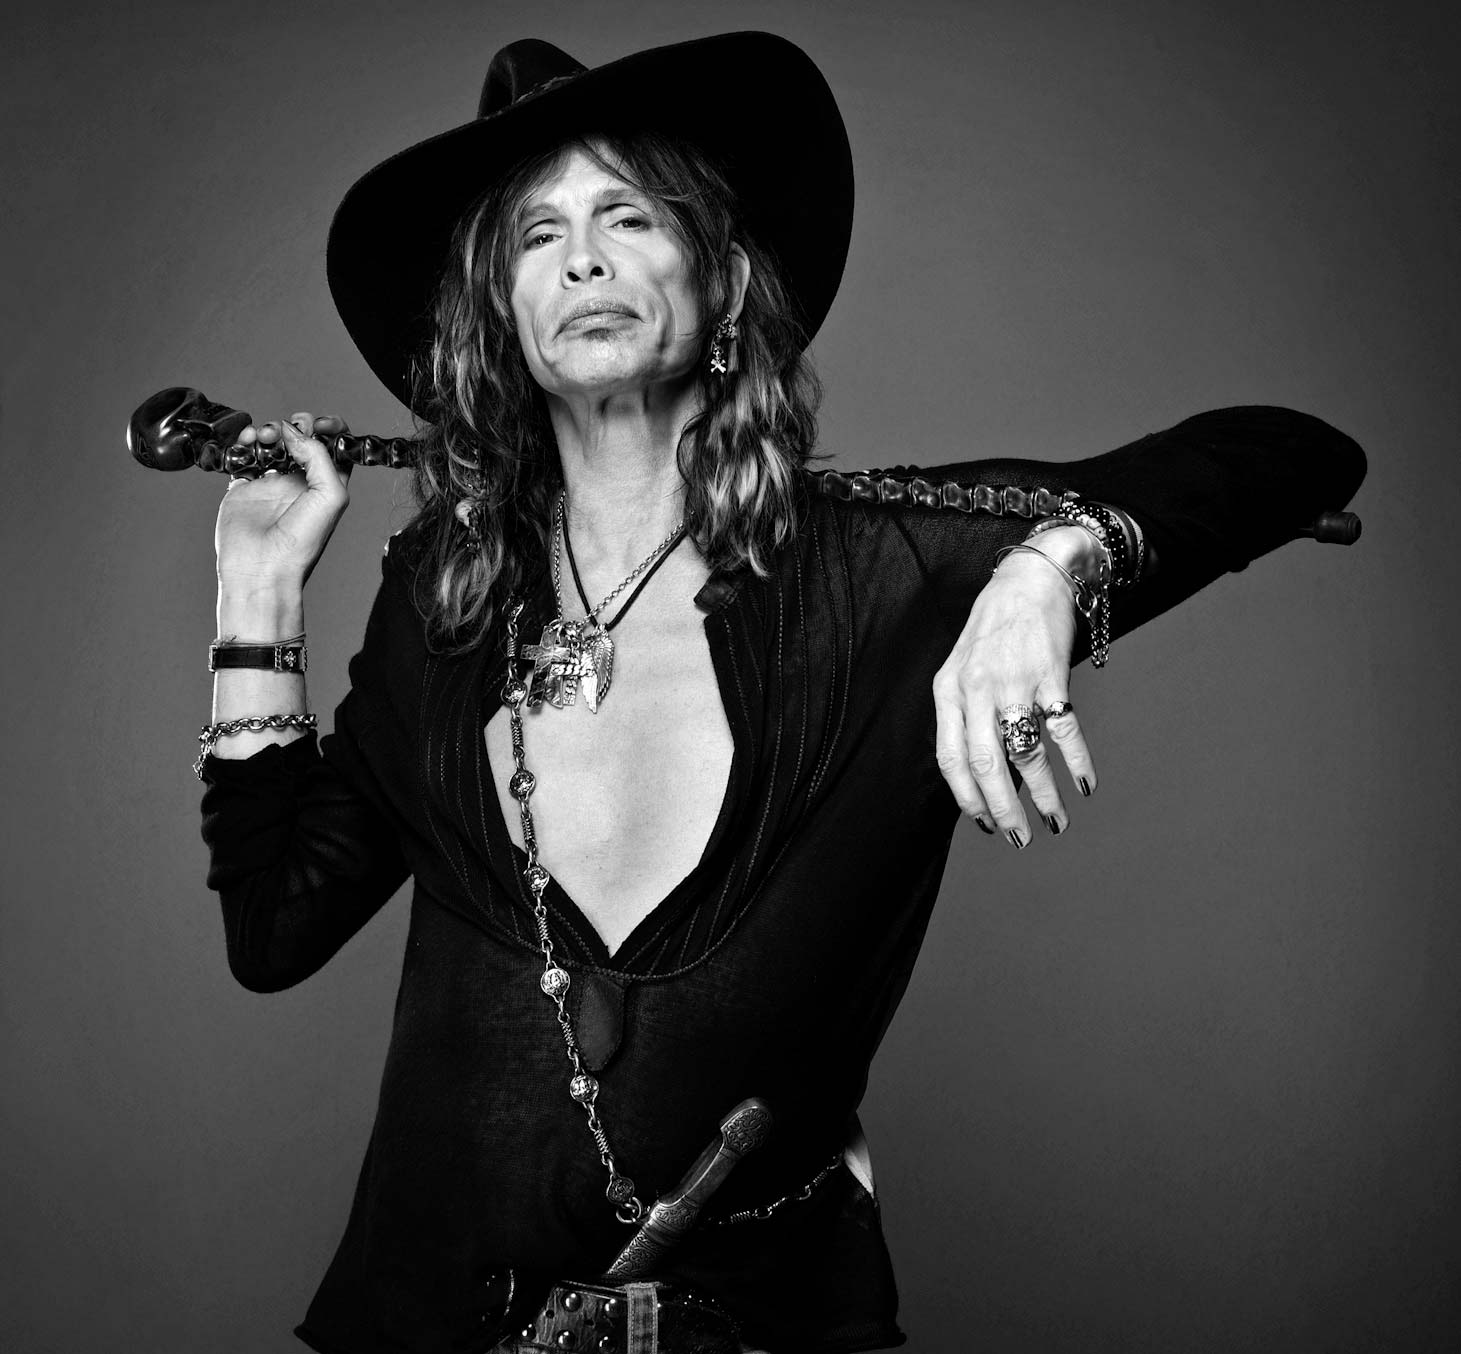 Photo : Ian Spanier Steven Tyler Aerosmith